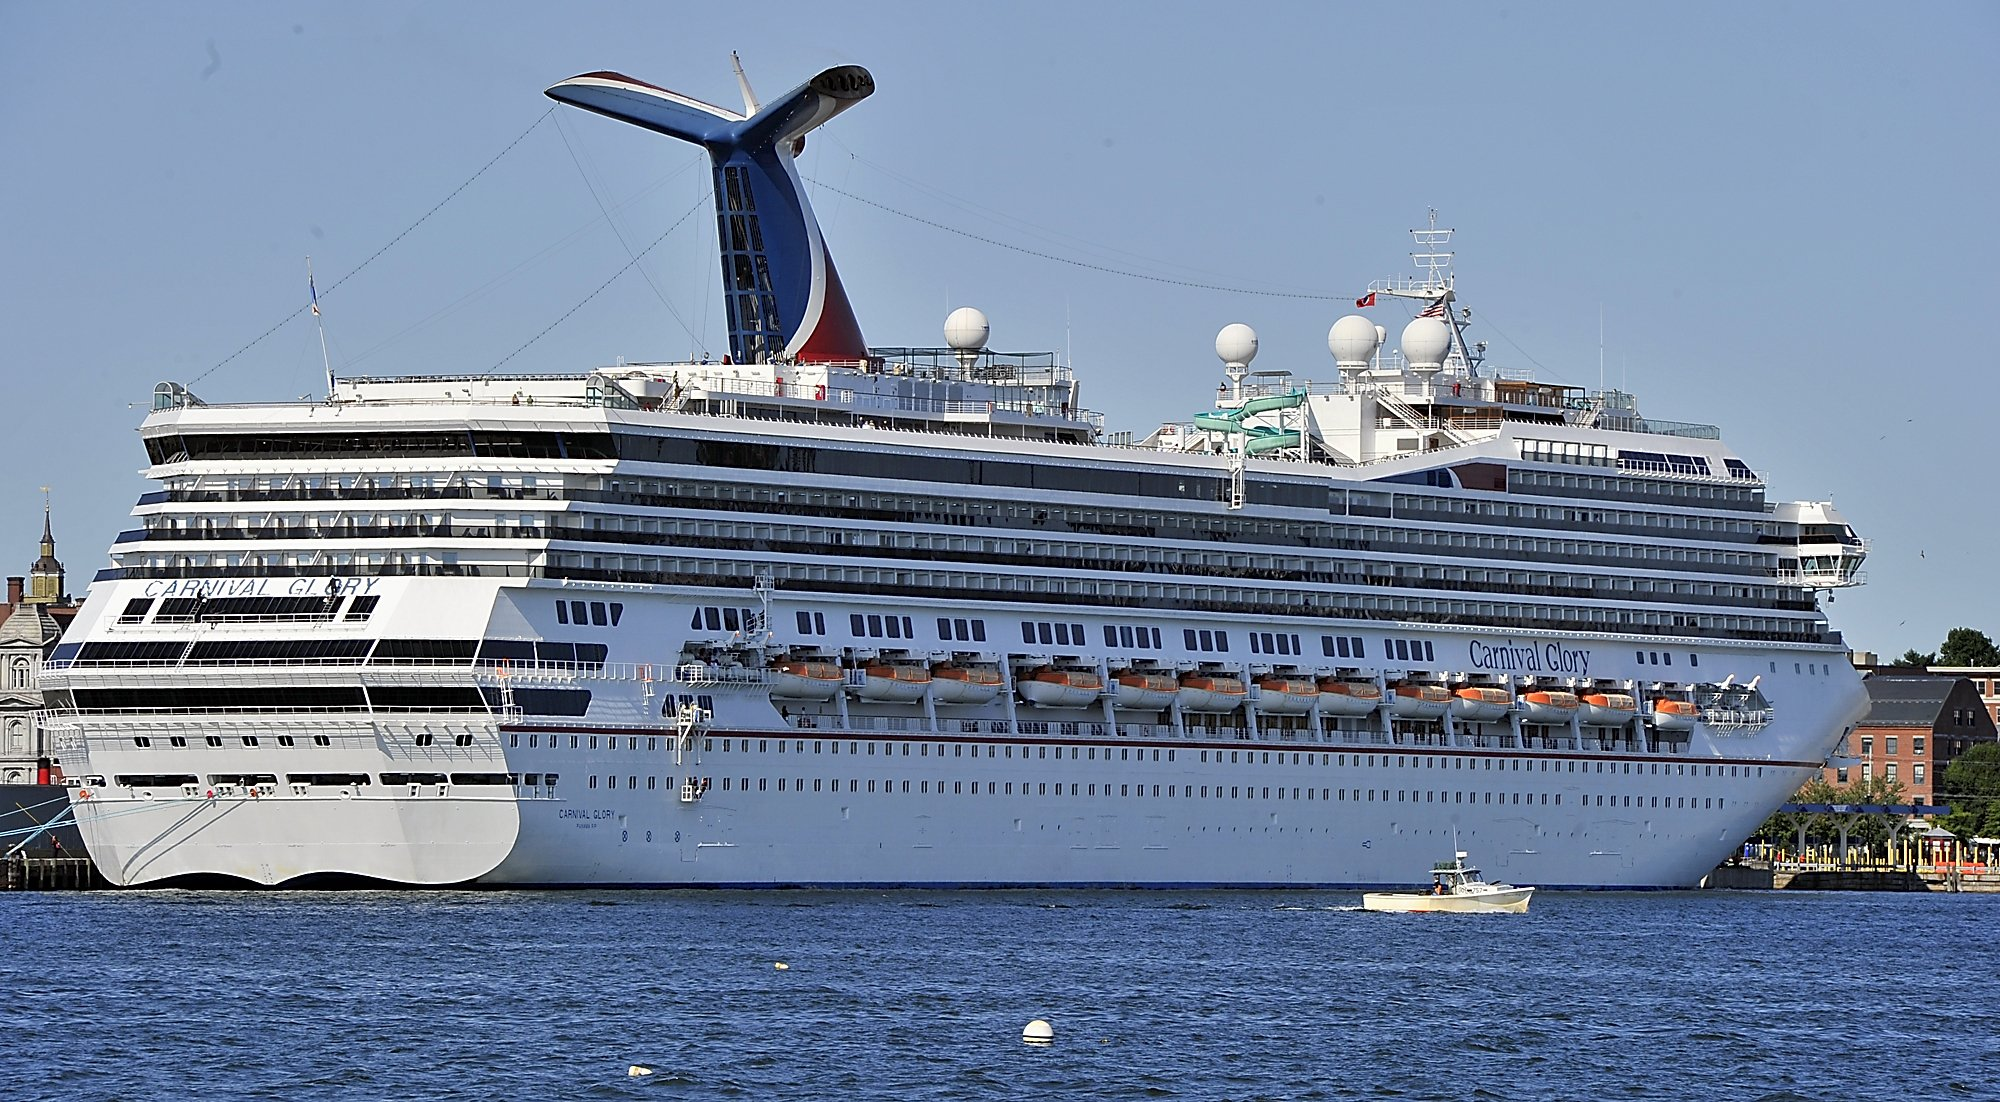 On Tuesday, September 17, 2013, a lobster boat is dwarfed by the size of the Carnival Glory, a cruis